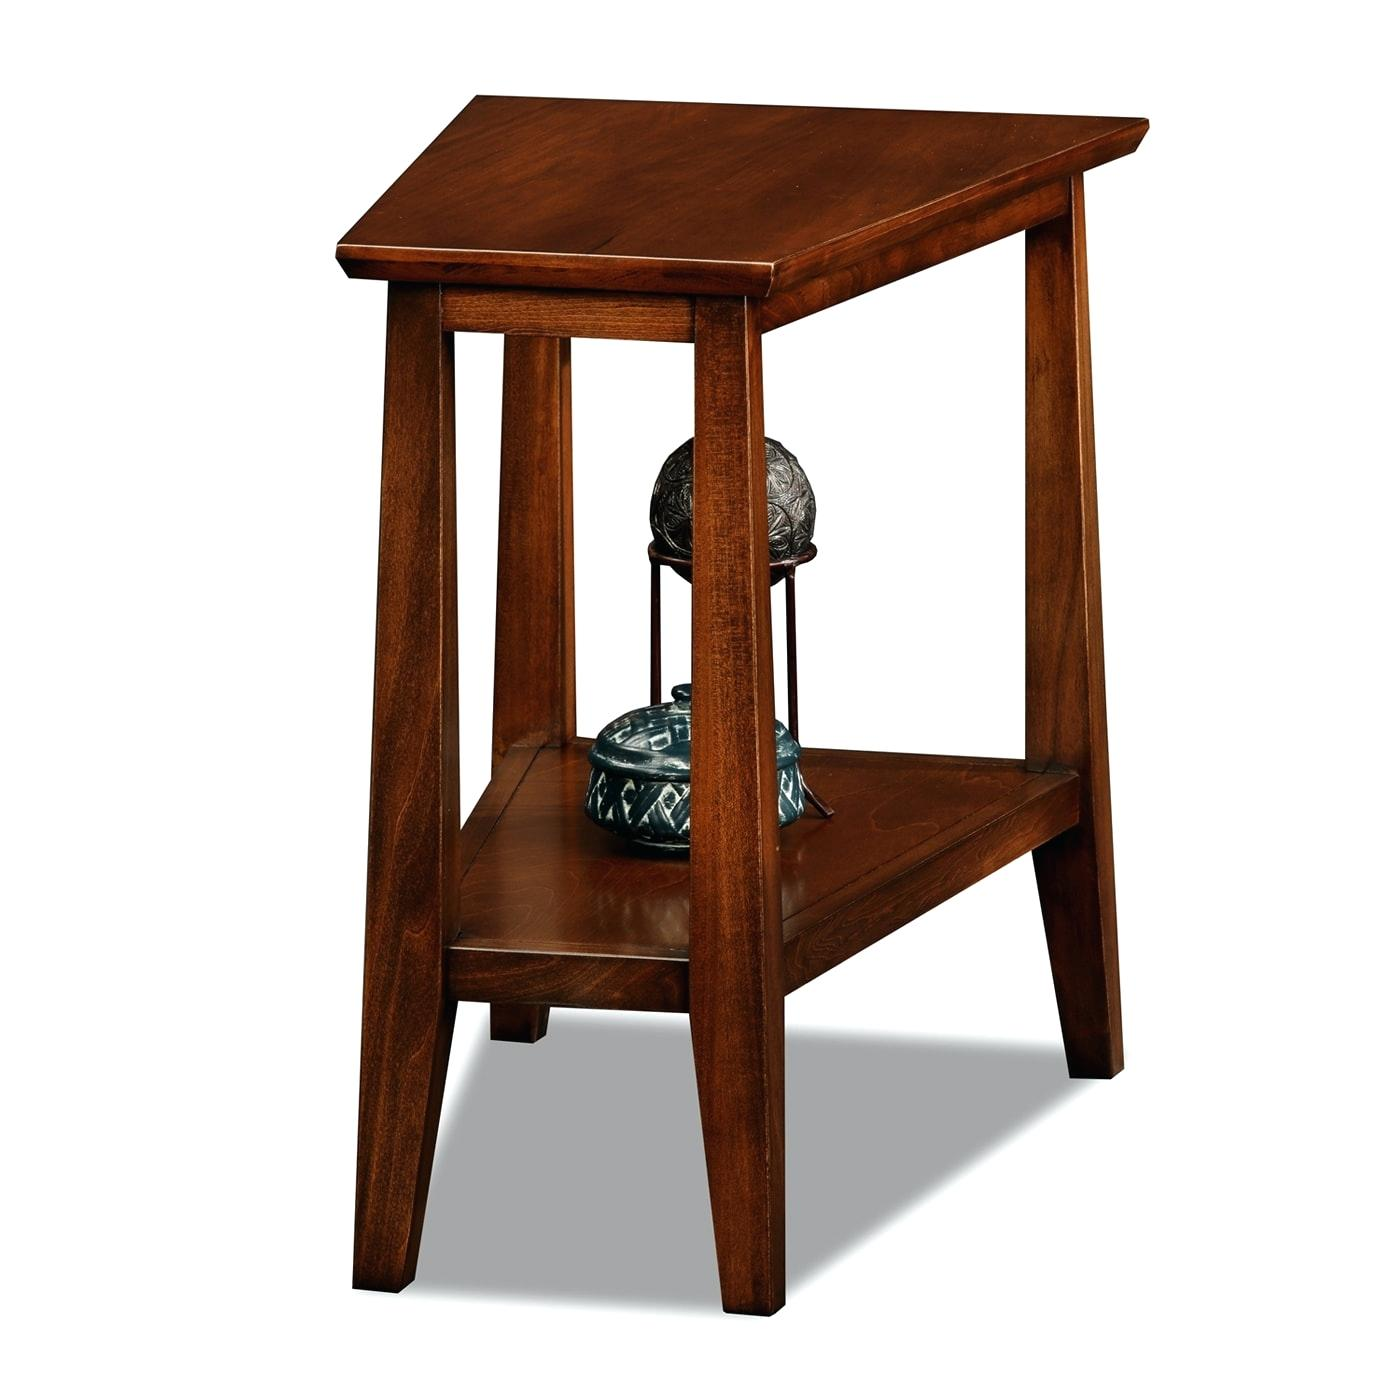 wedge shaped end tables occasional accent table coffee inch nightstand bar height for argos bedroom furniture whole tablecloths decorative side cupcake carrier target stained